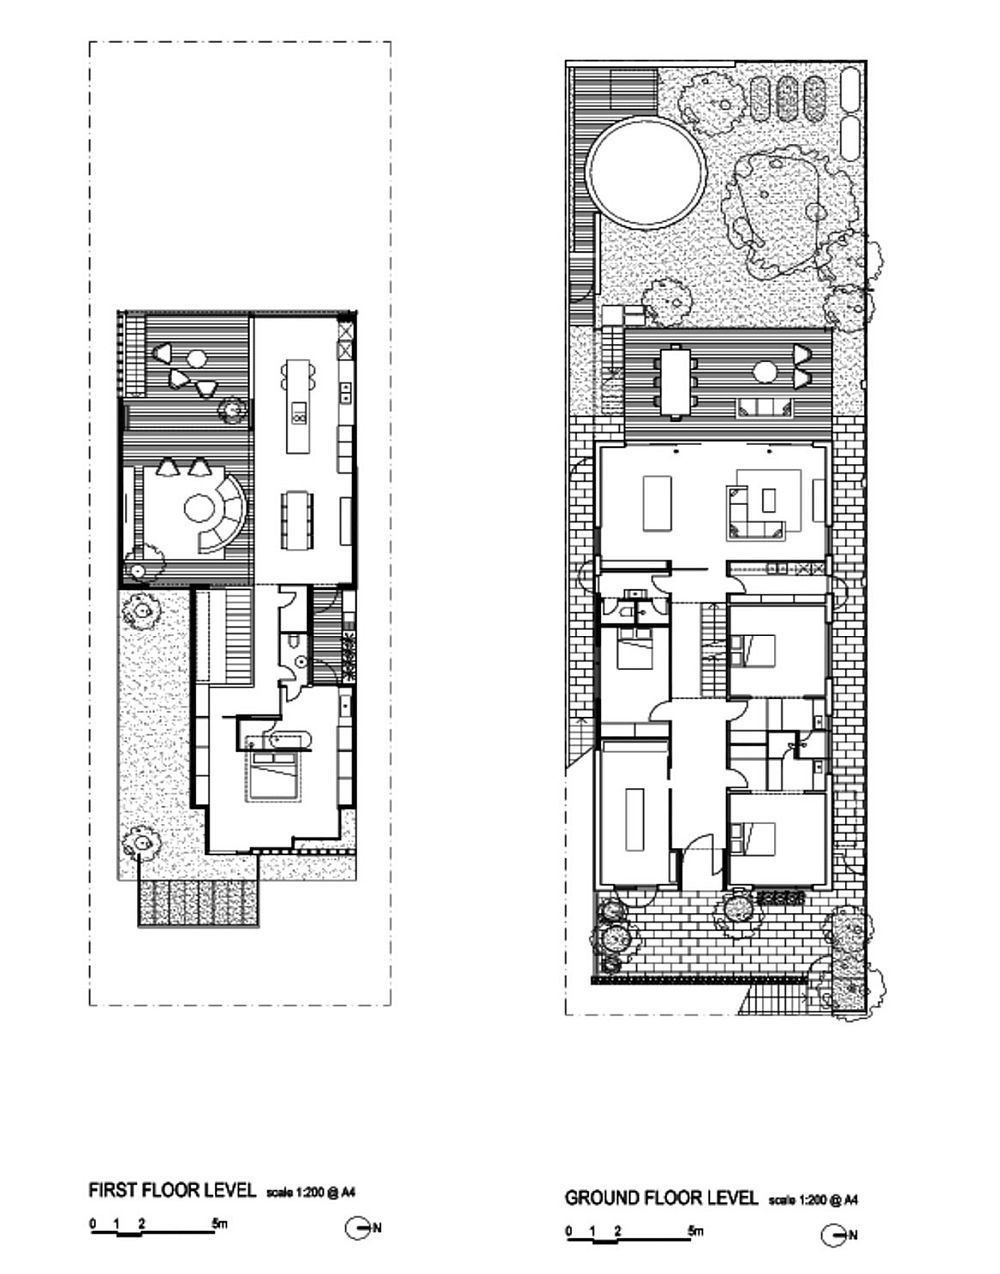 Ground floor and first floor plan of contemporary Goldtree House